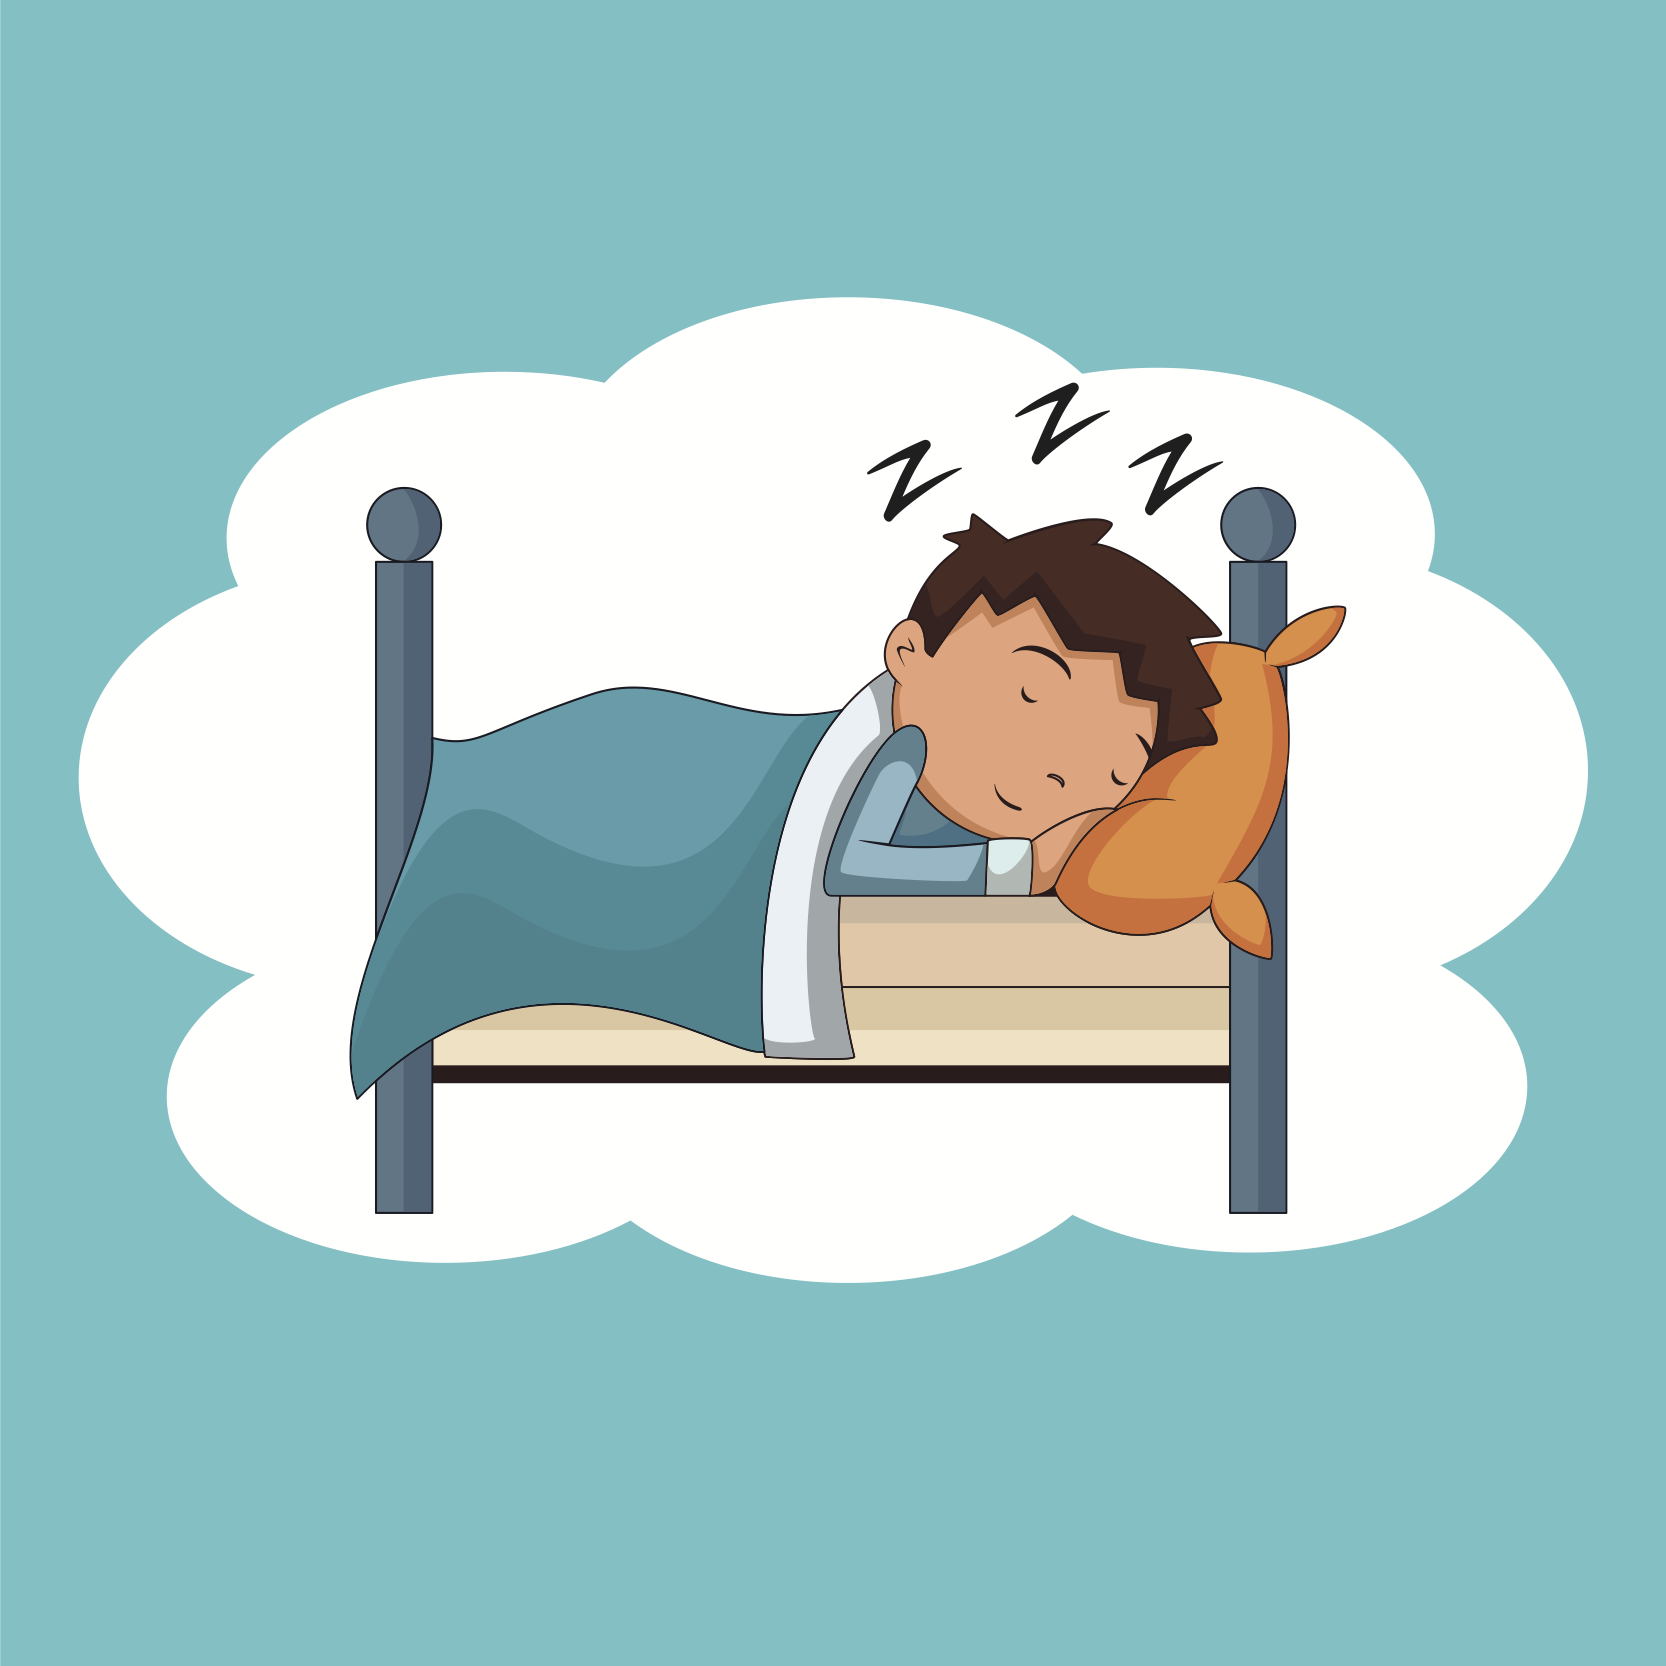 clip art royalty free library Wake clipart enough sleep. Why do we need